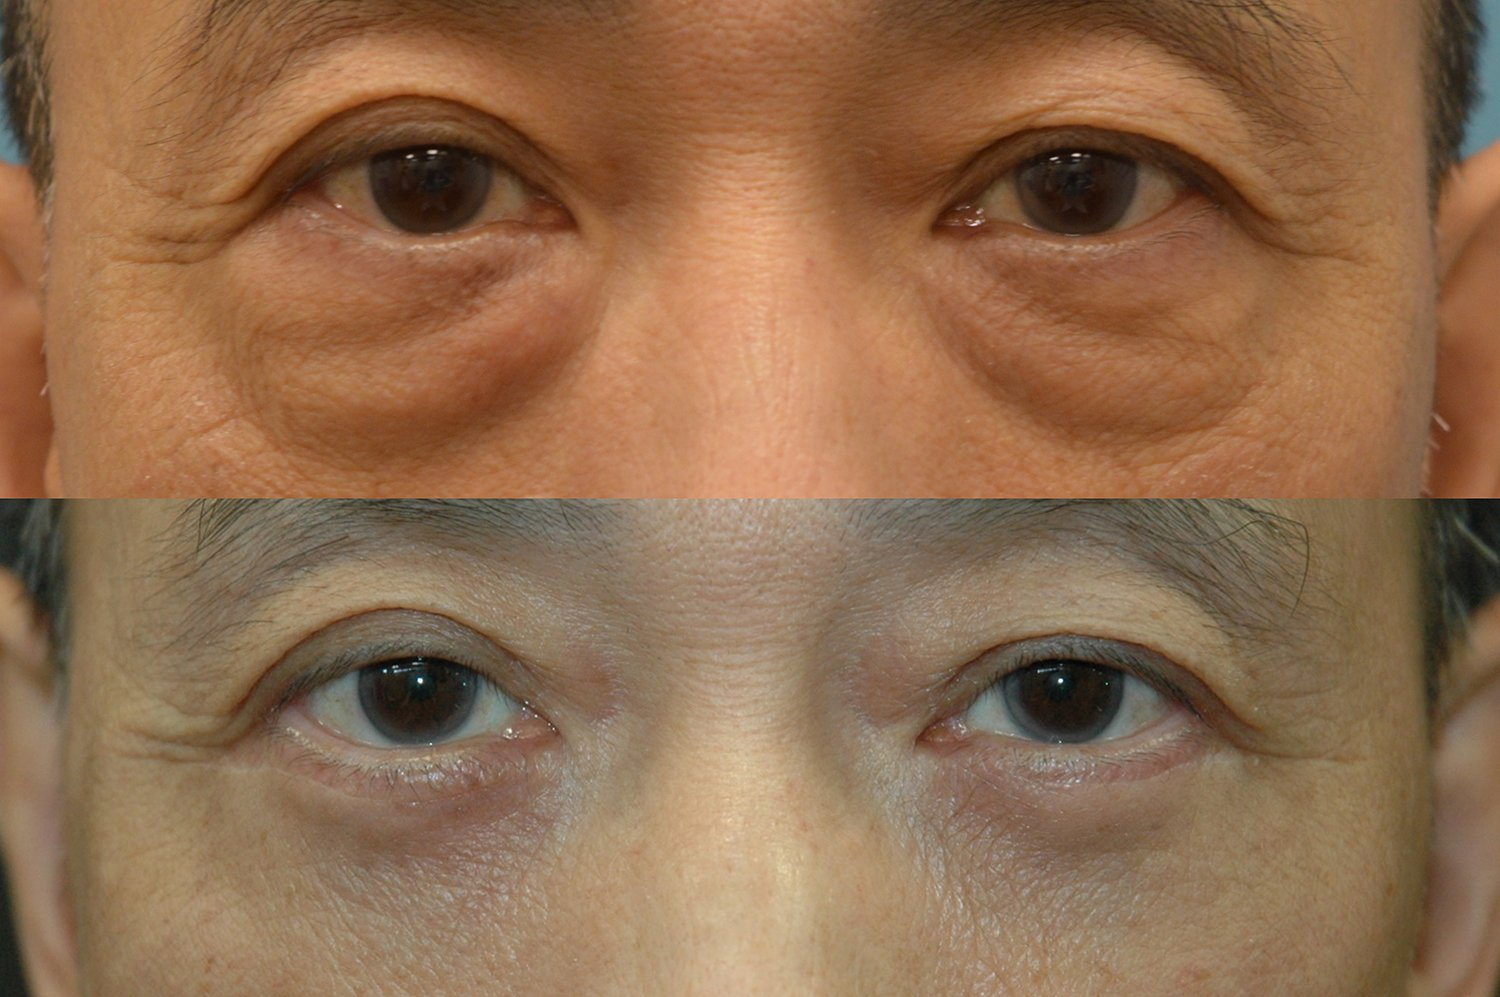 62-year-old lower eyelid transconjunctival bleph w. fat transposition . four months after surgery forward gaze